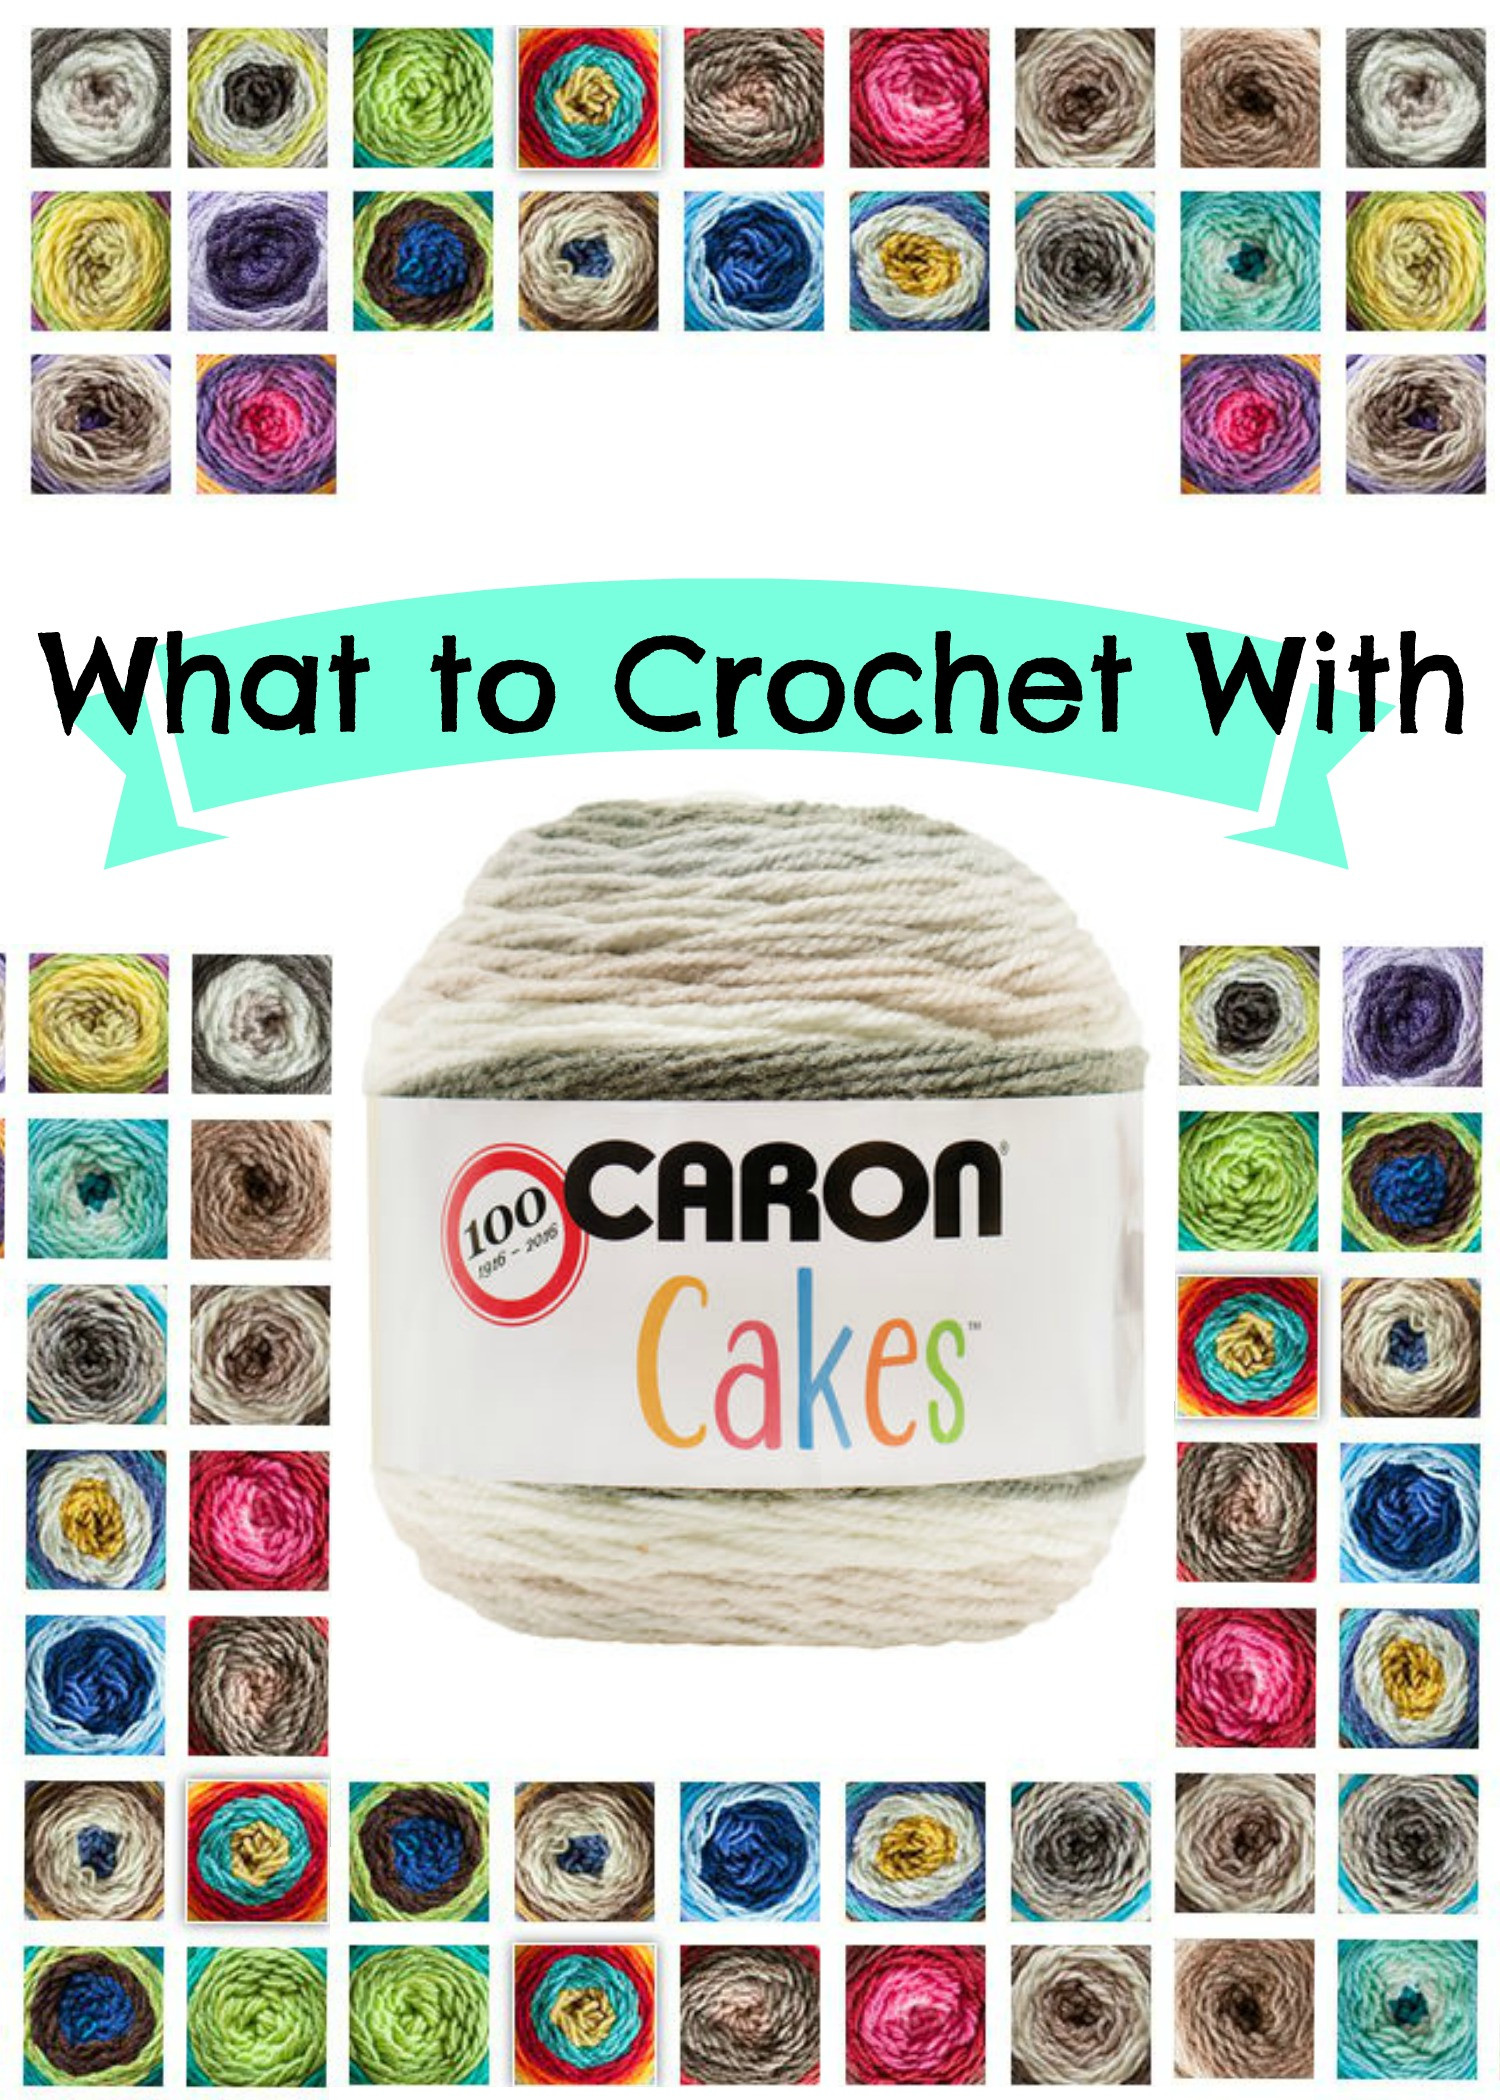 What to Crochet With Caron Cakes Yarn Happily Hooked